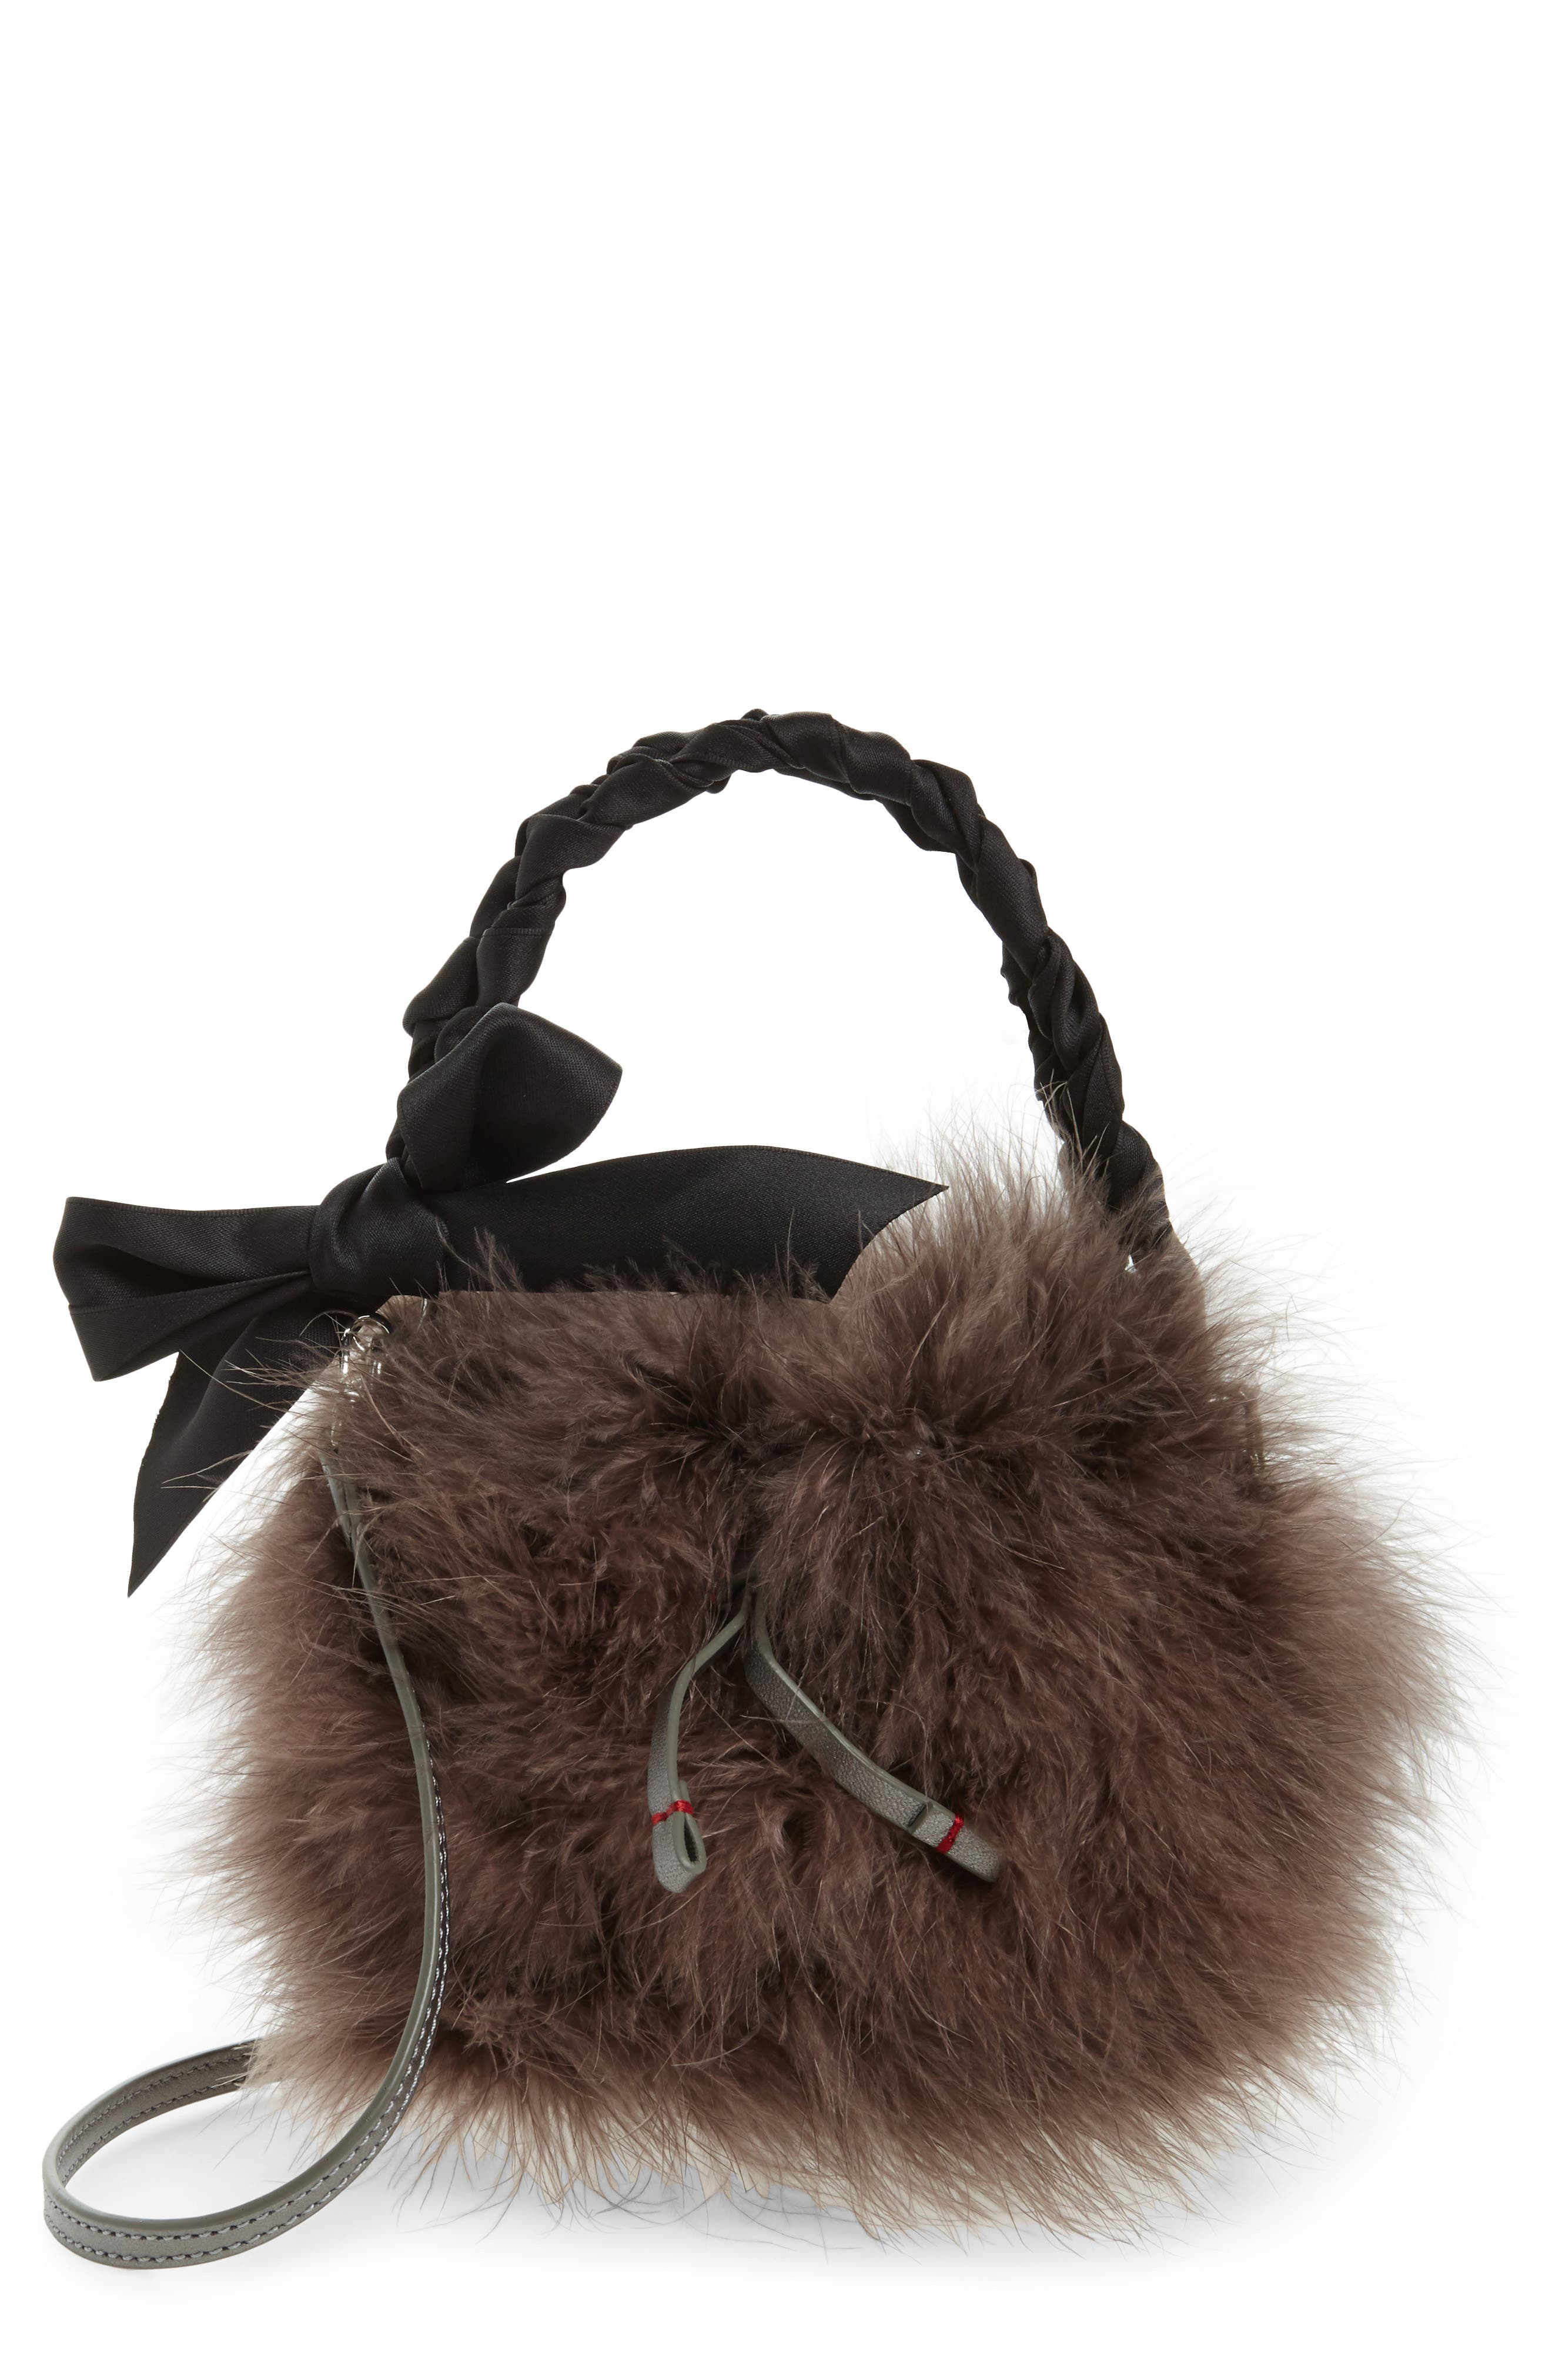 Main Image - Frances Valentine Small Calfskin Leather & Feather Bucket Bag